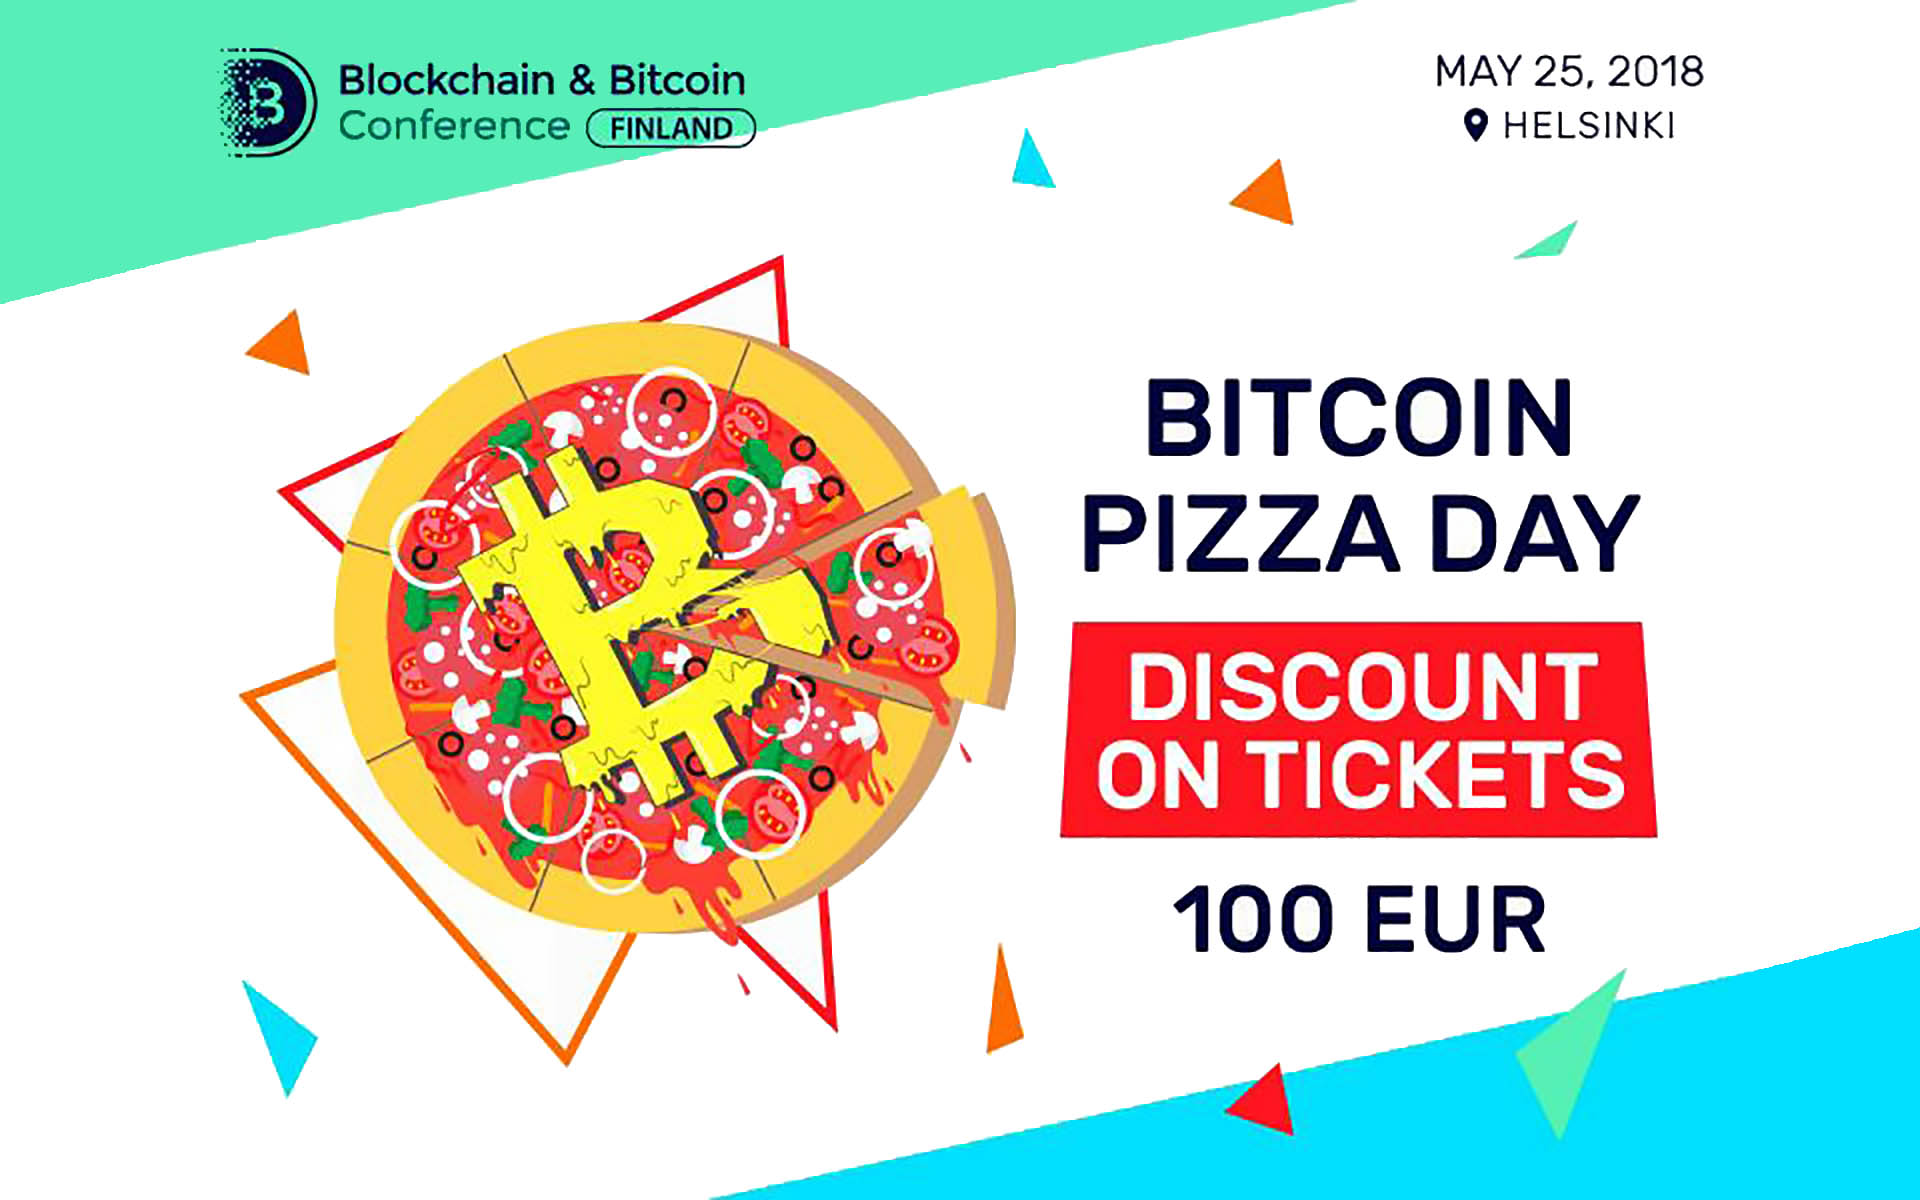 Pizza Day Celebration: A Ticket for Blockchain & Bitcoin Conference Finland for 100€!